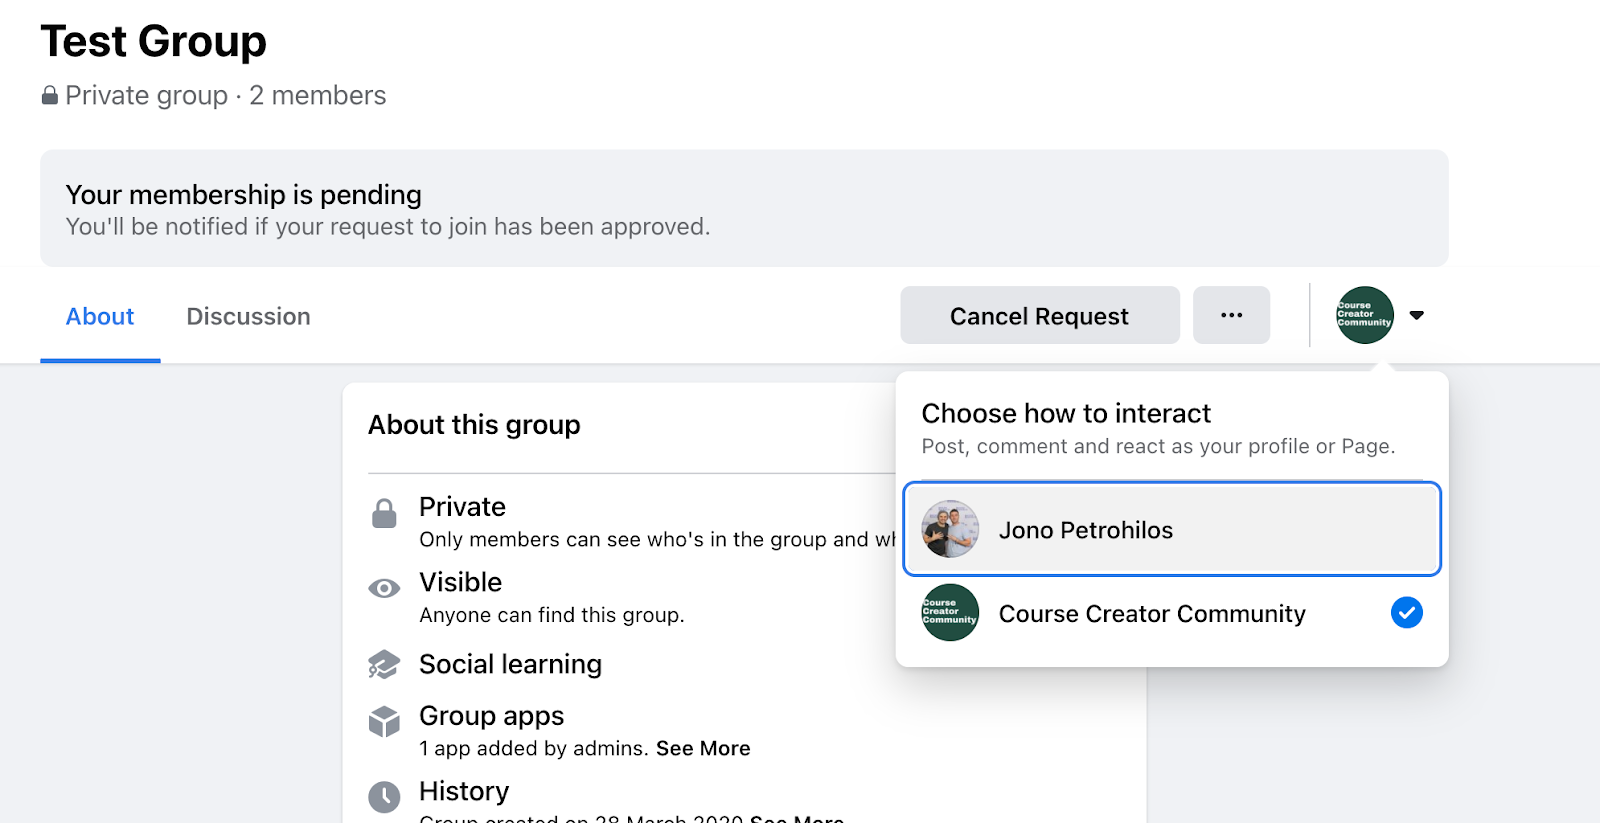 Step 1: Click your Pages display image and a drop-down menu will appear asking how you want to interact, select your Personal Profile